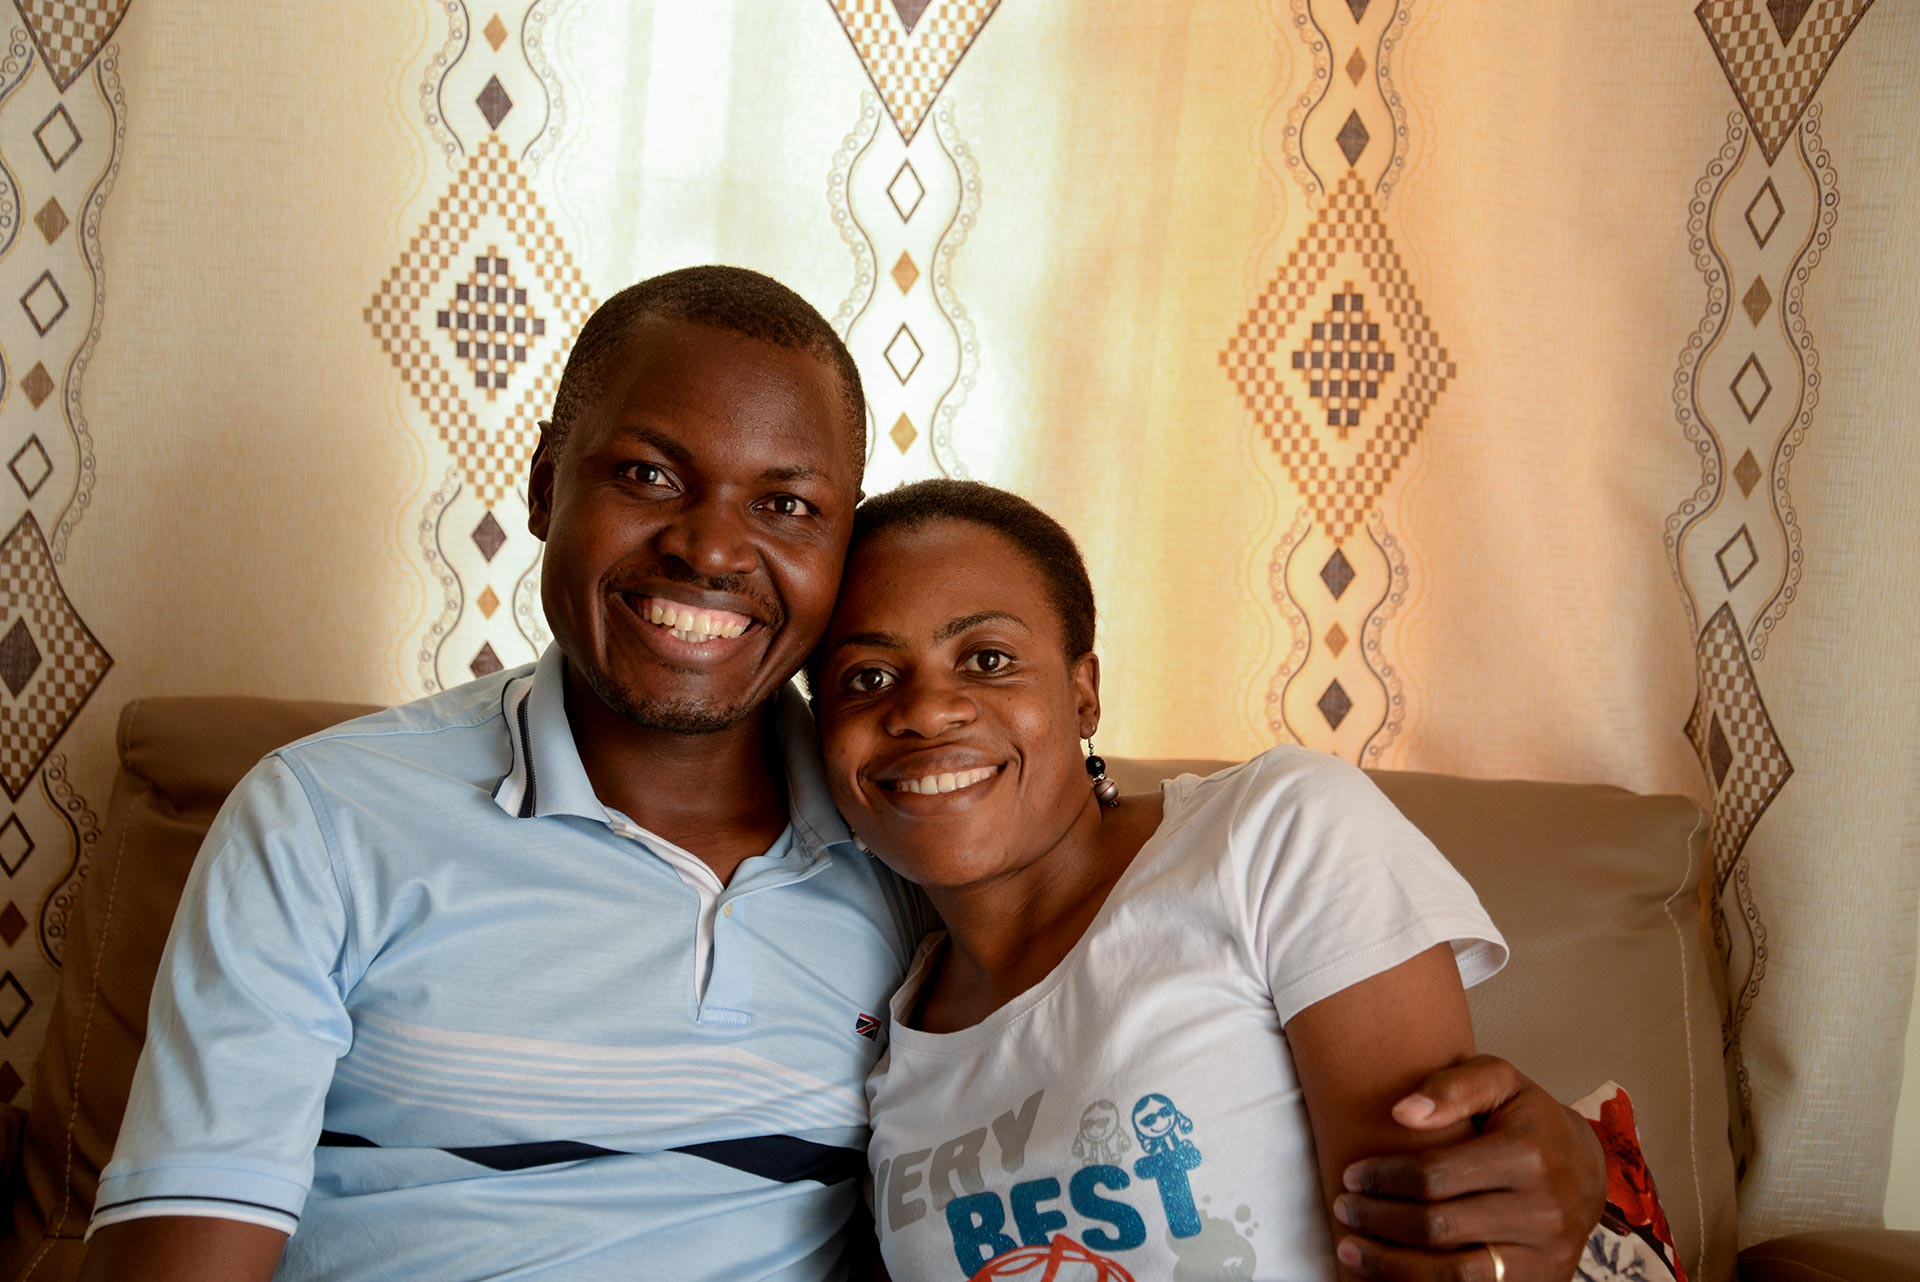 A Ugandan man and woman sit together on a couch and smile.